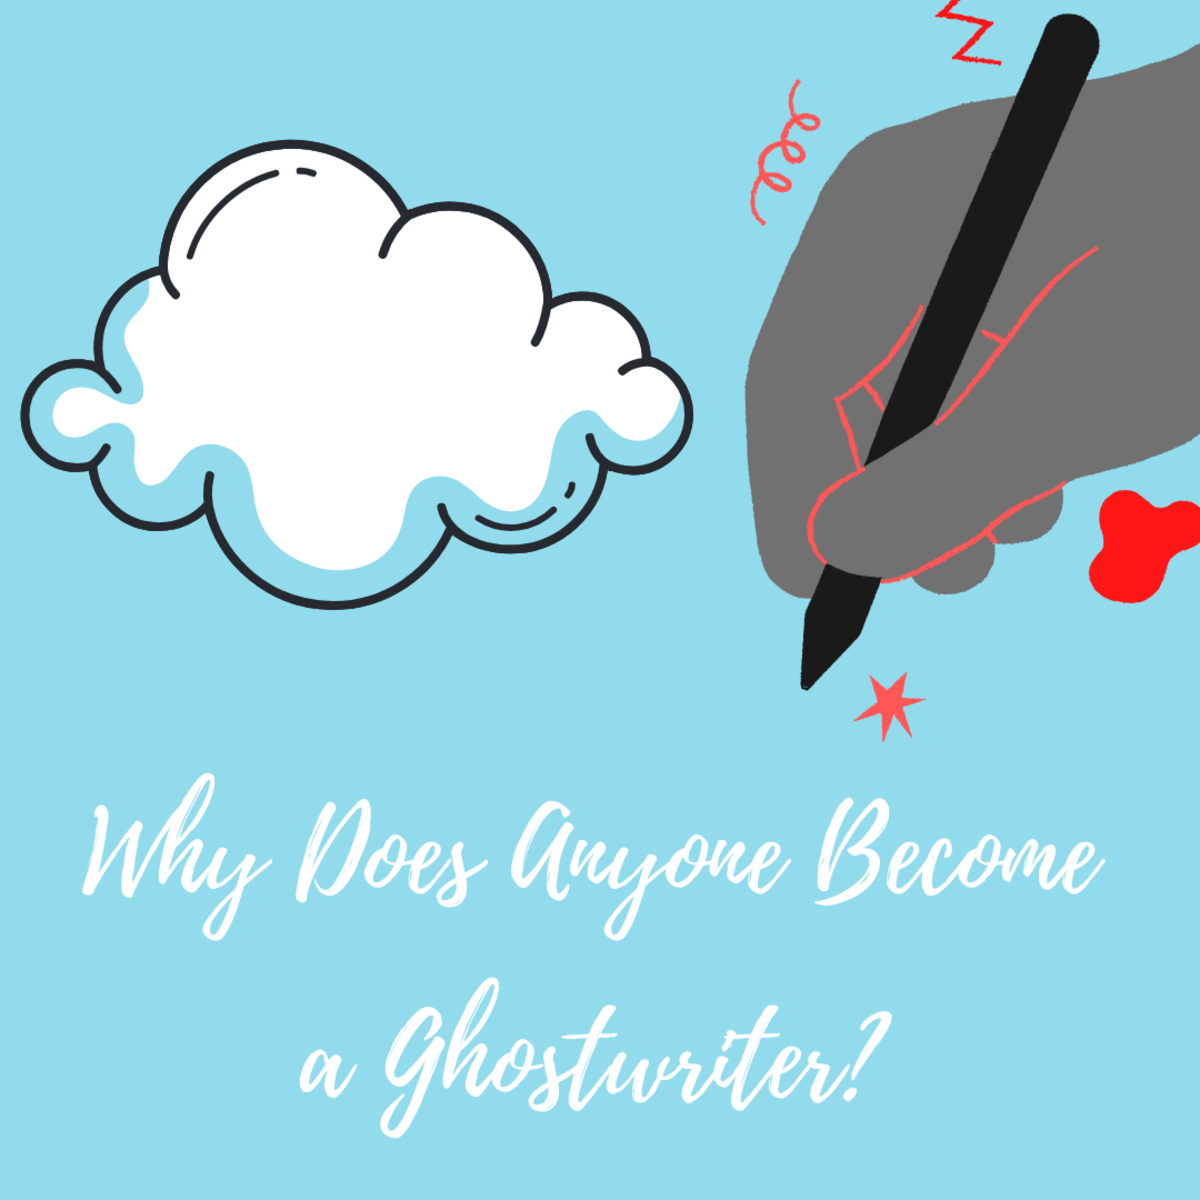 What Is a Ghostwriter and Who Gets Credit for Their Work?